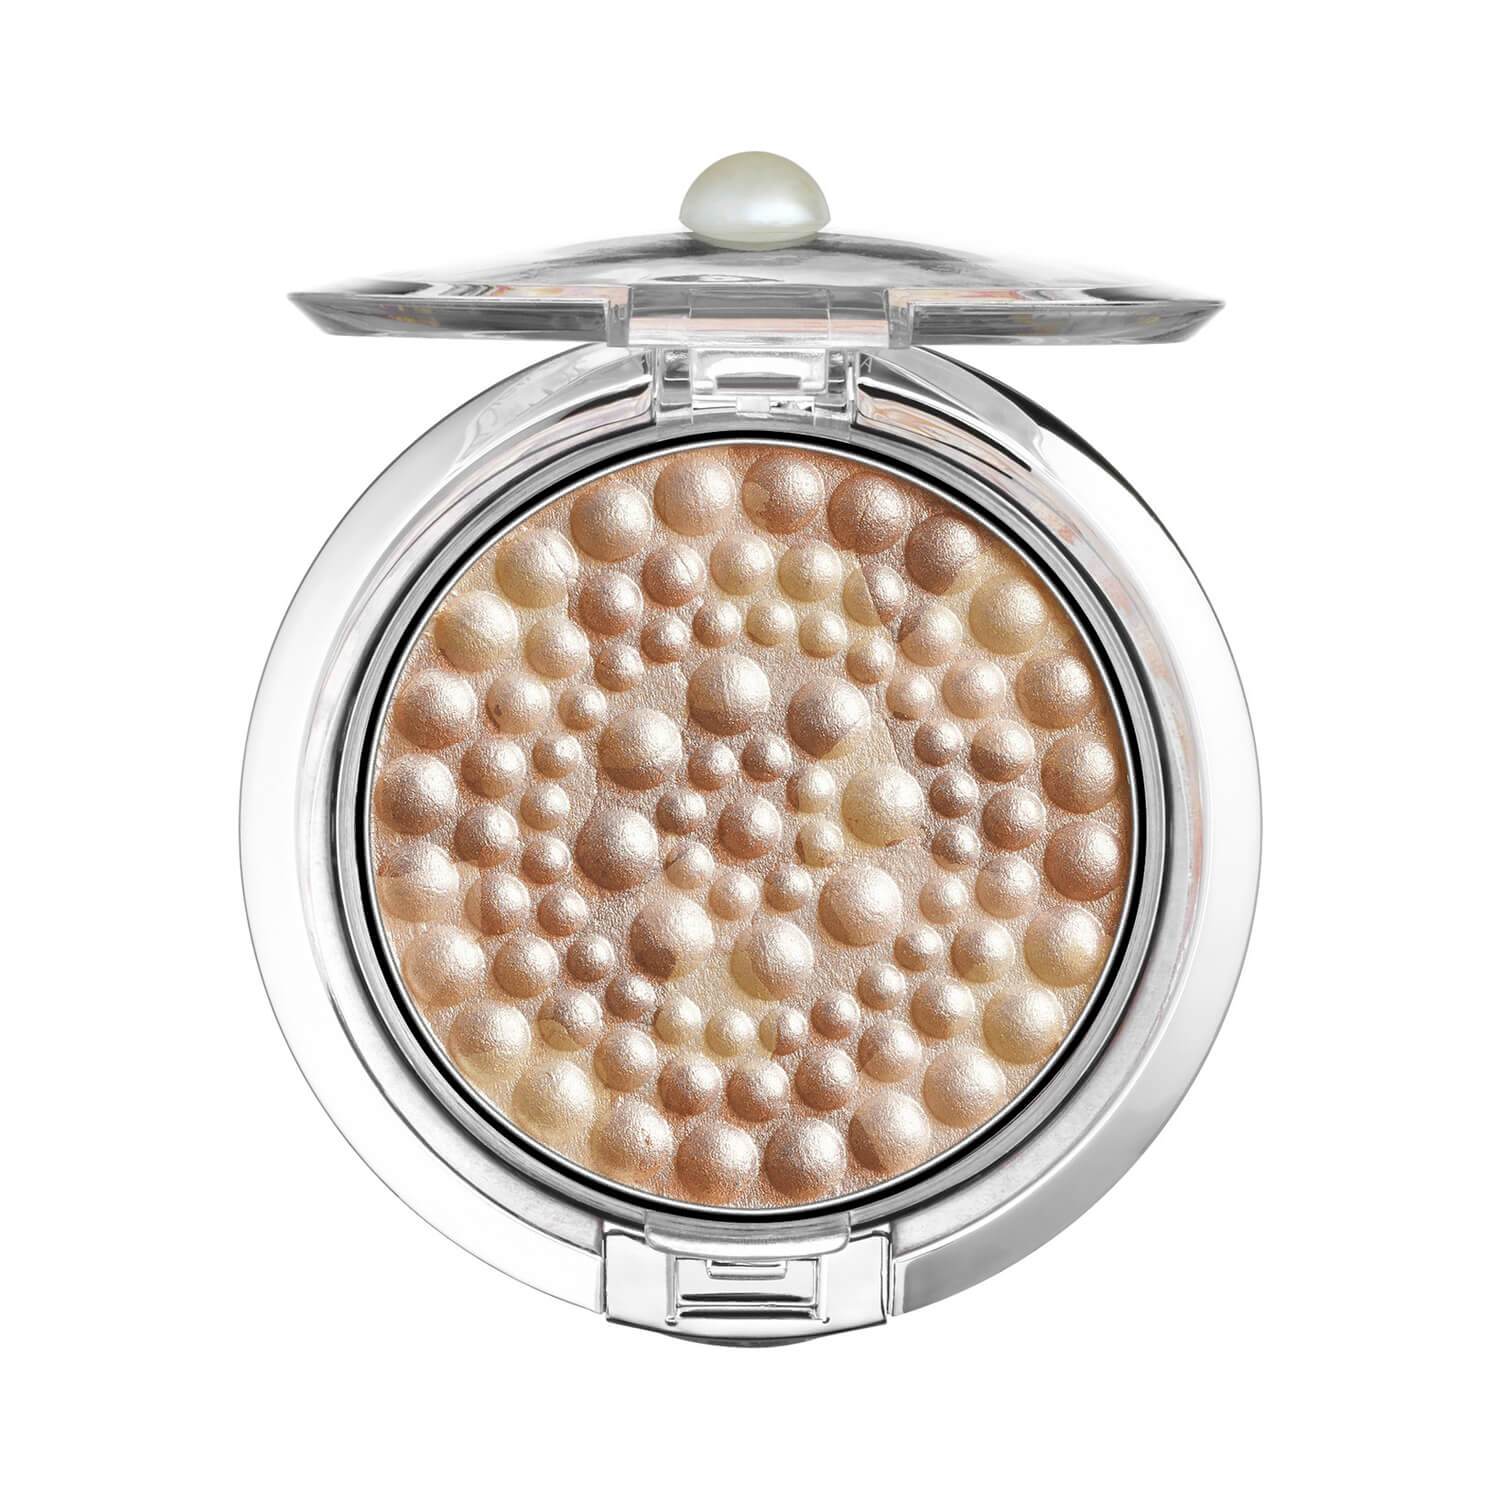 Physicians Formula Powder Palette Mineral Glow Pearls Light Bronze Pearl